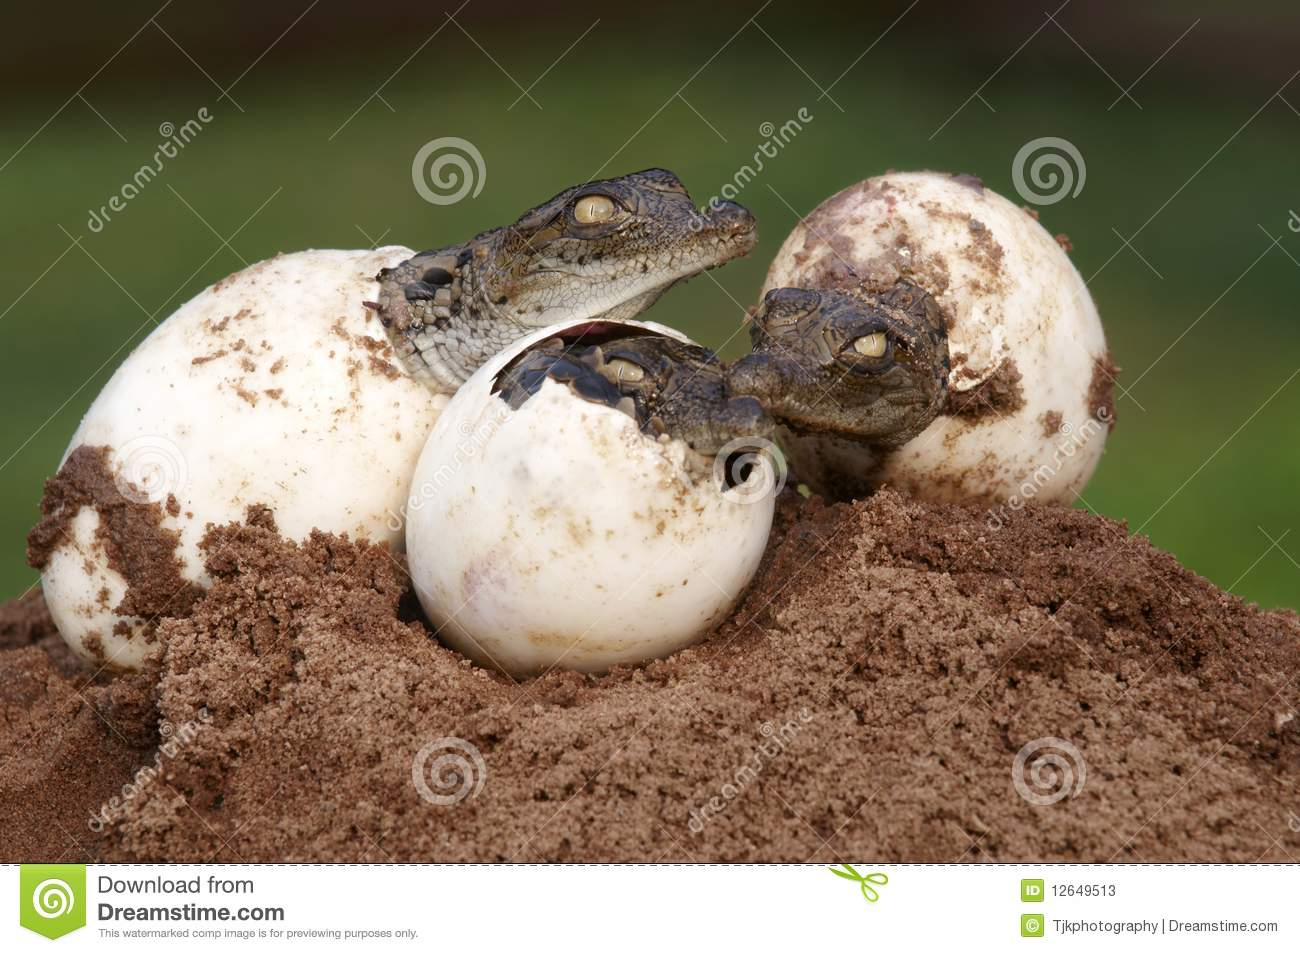 Three Young Nile Crocodiles hatching from eggs